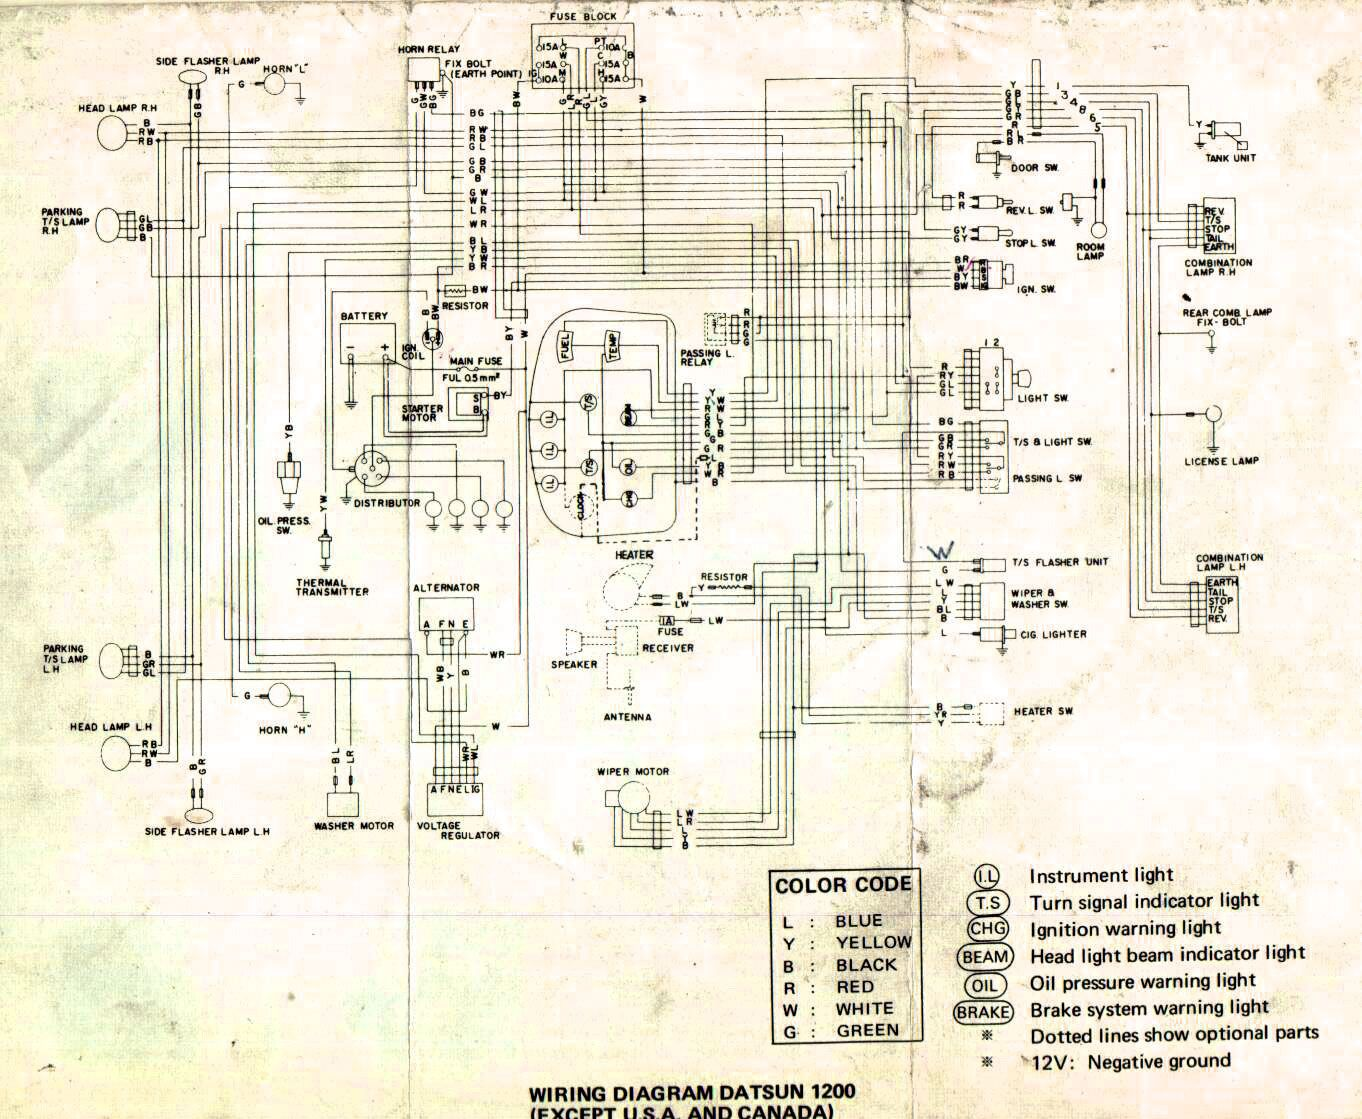 Wiring Diagram For Nissan 1400 Bakkie 8 Pinterest Connect